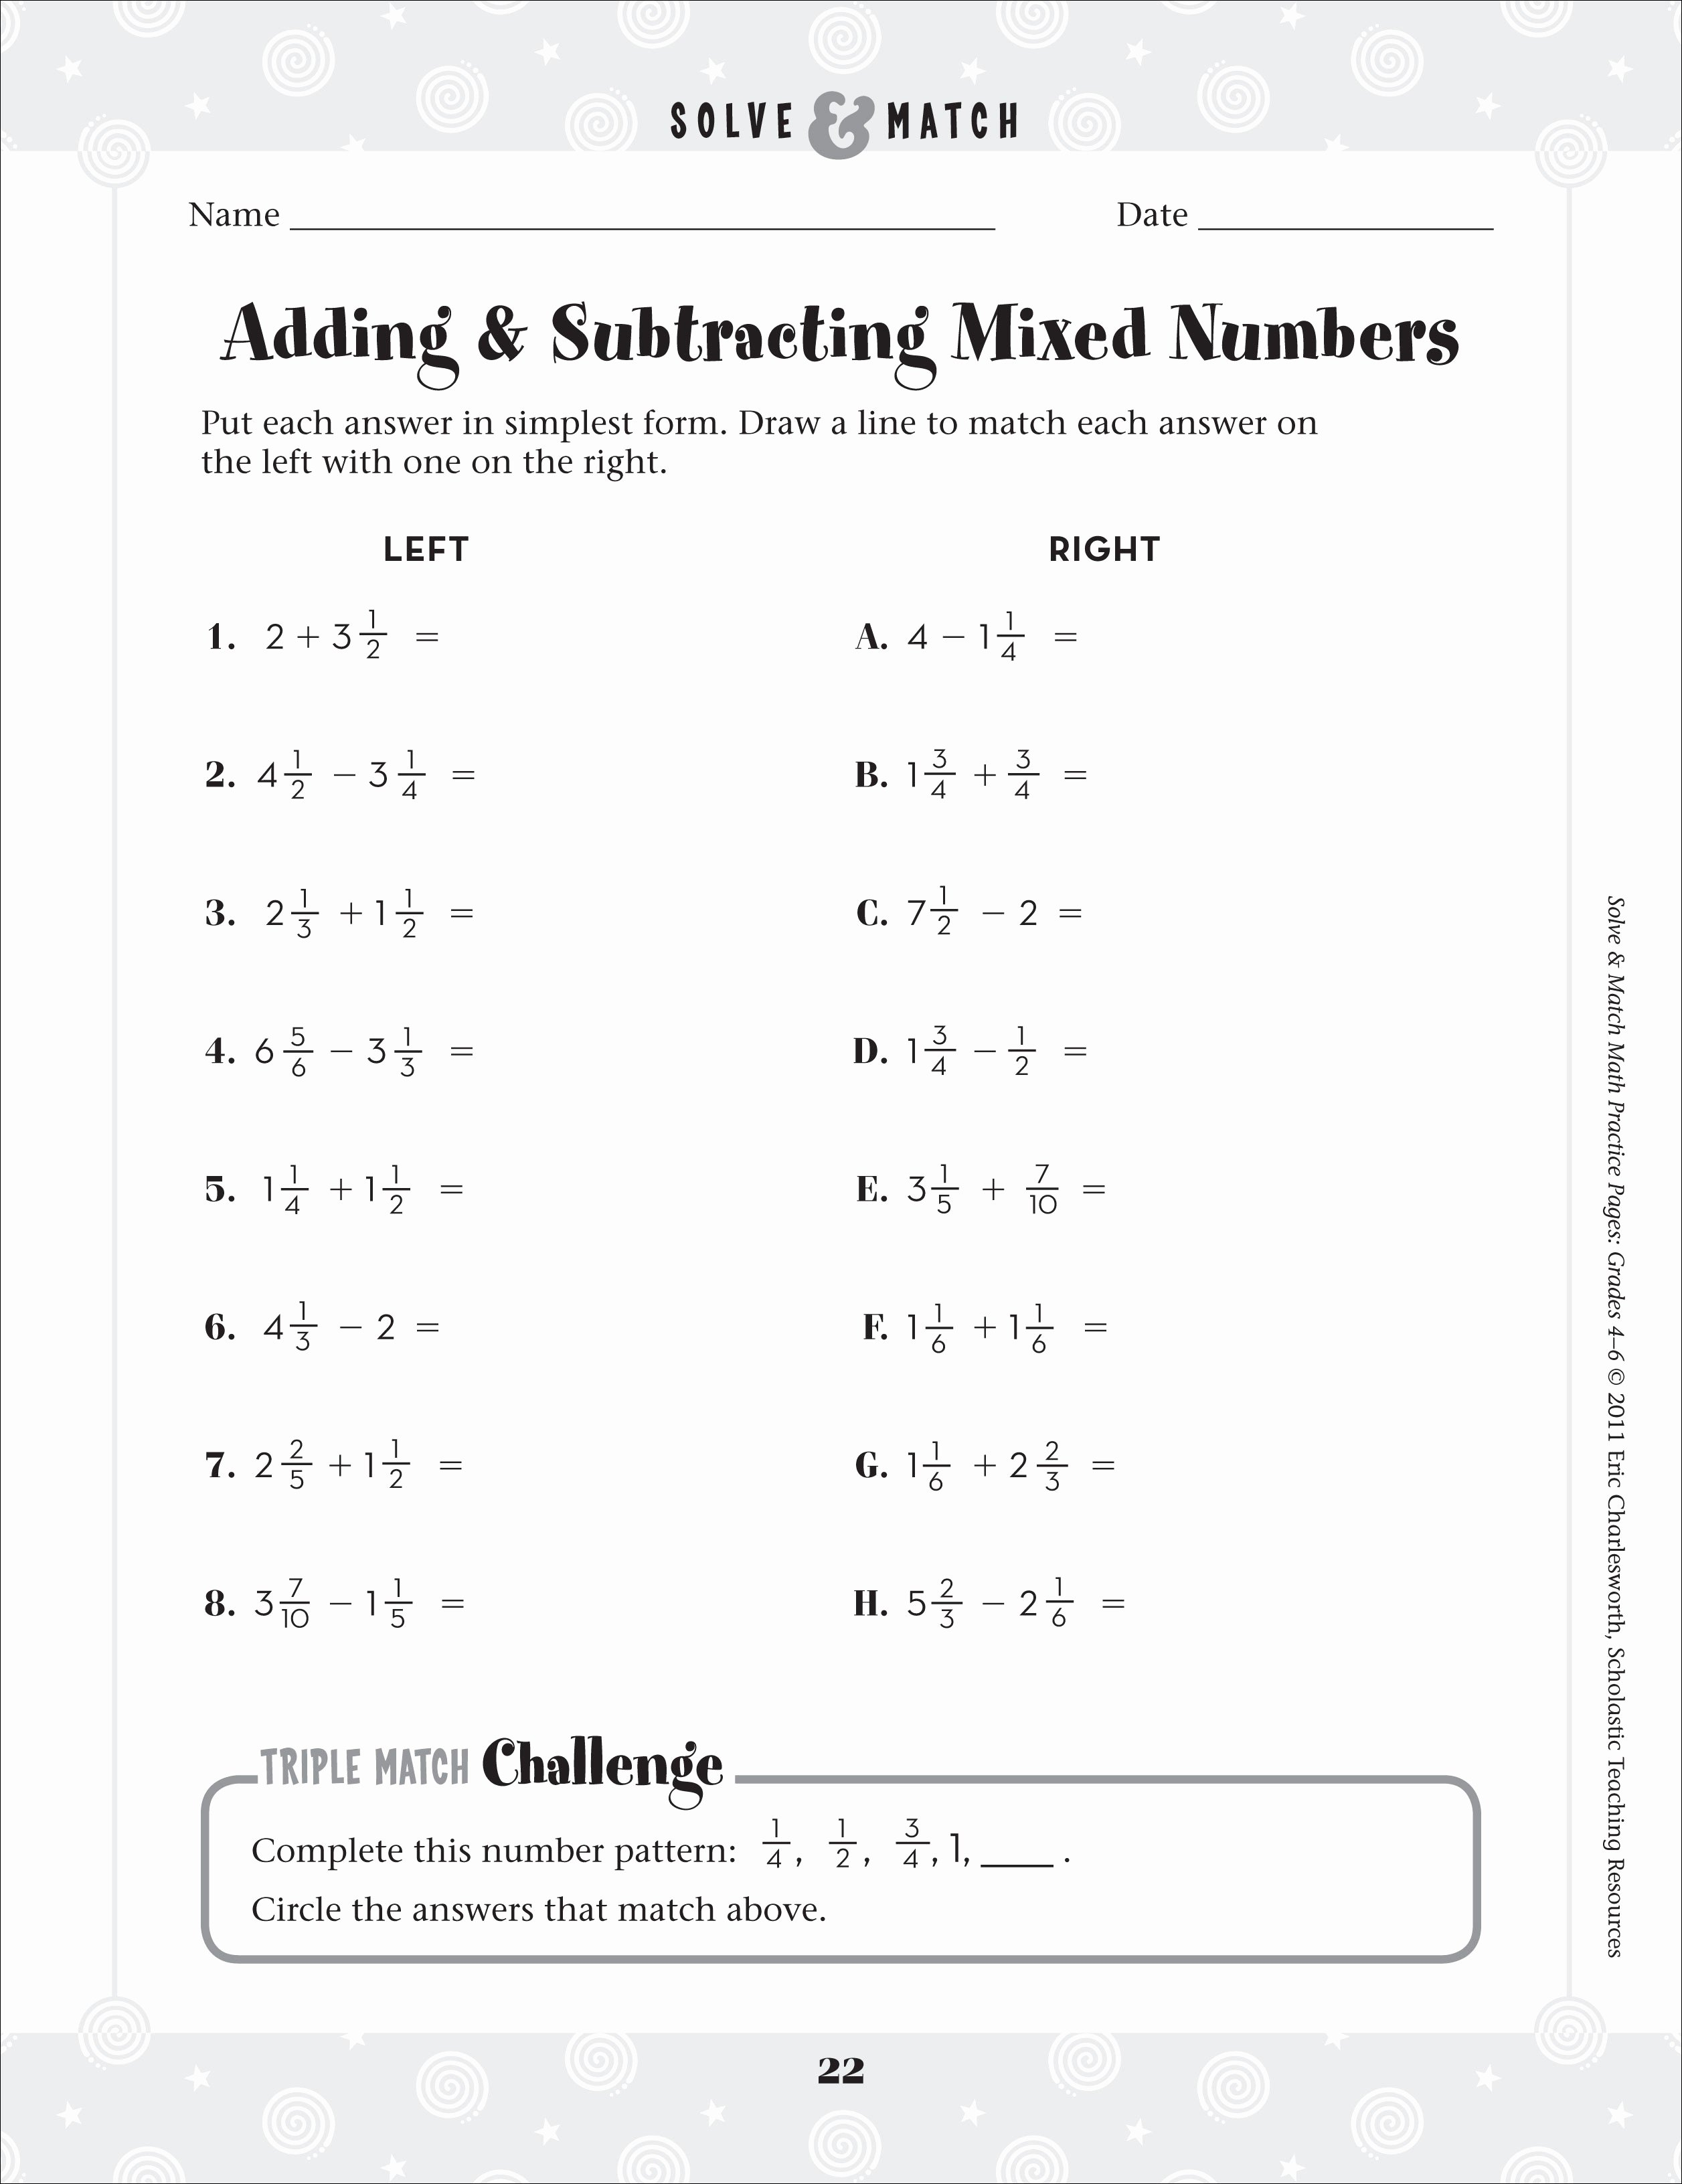 Subtracting Mixed Numbers Worksheet Fresh Math Worksheets Fractions – Michael Jordan Was Cut From